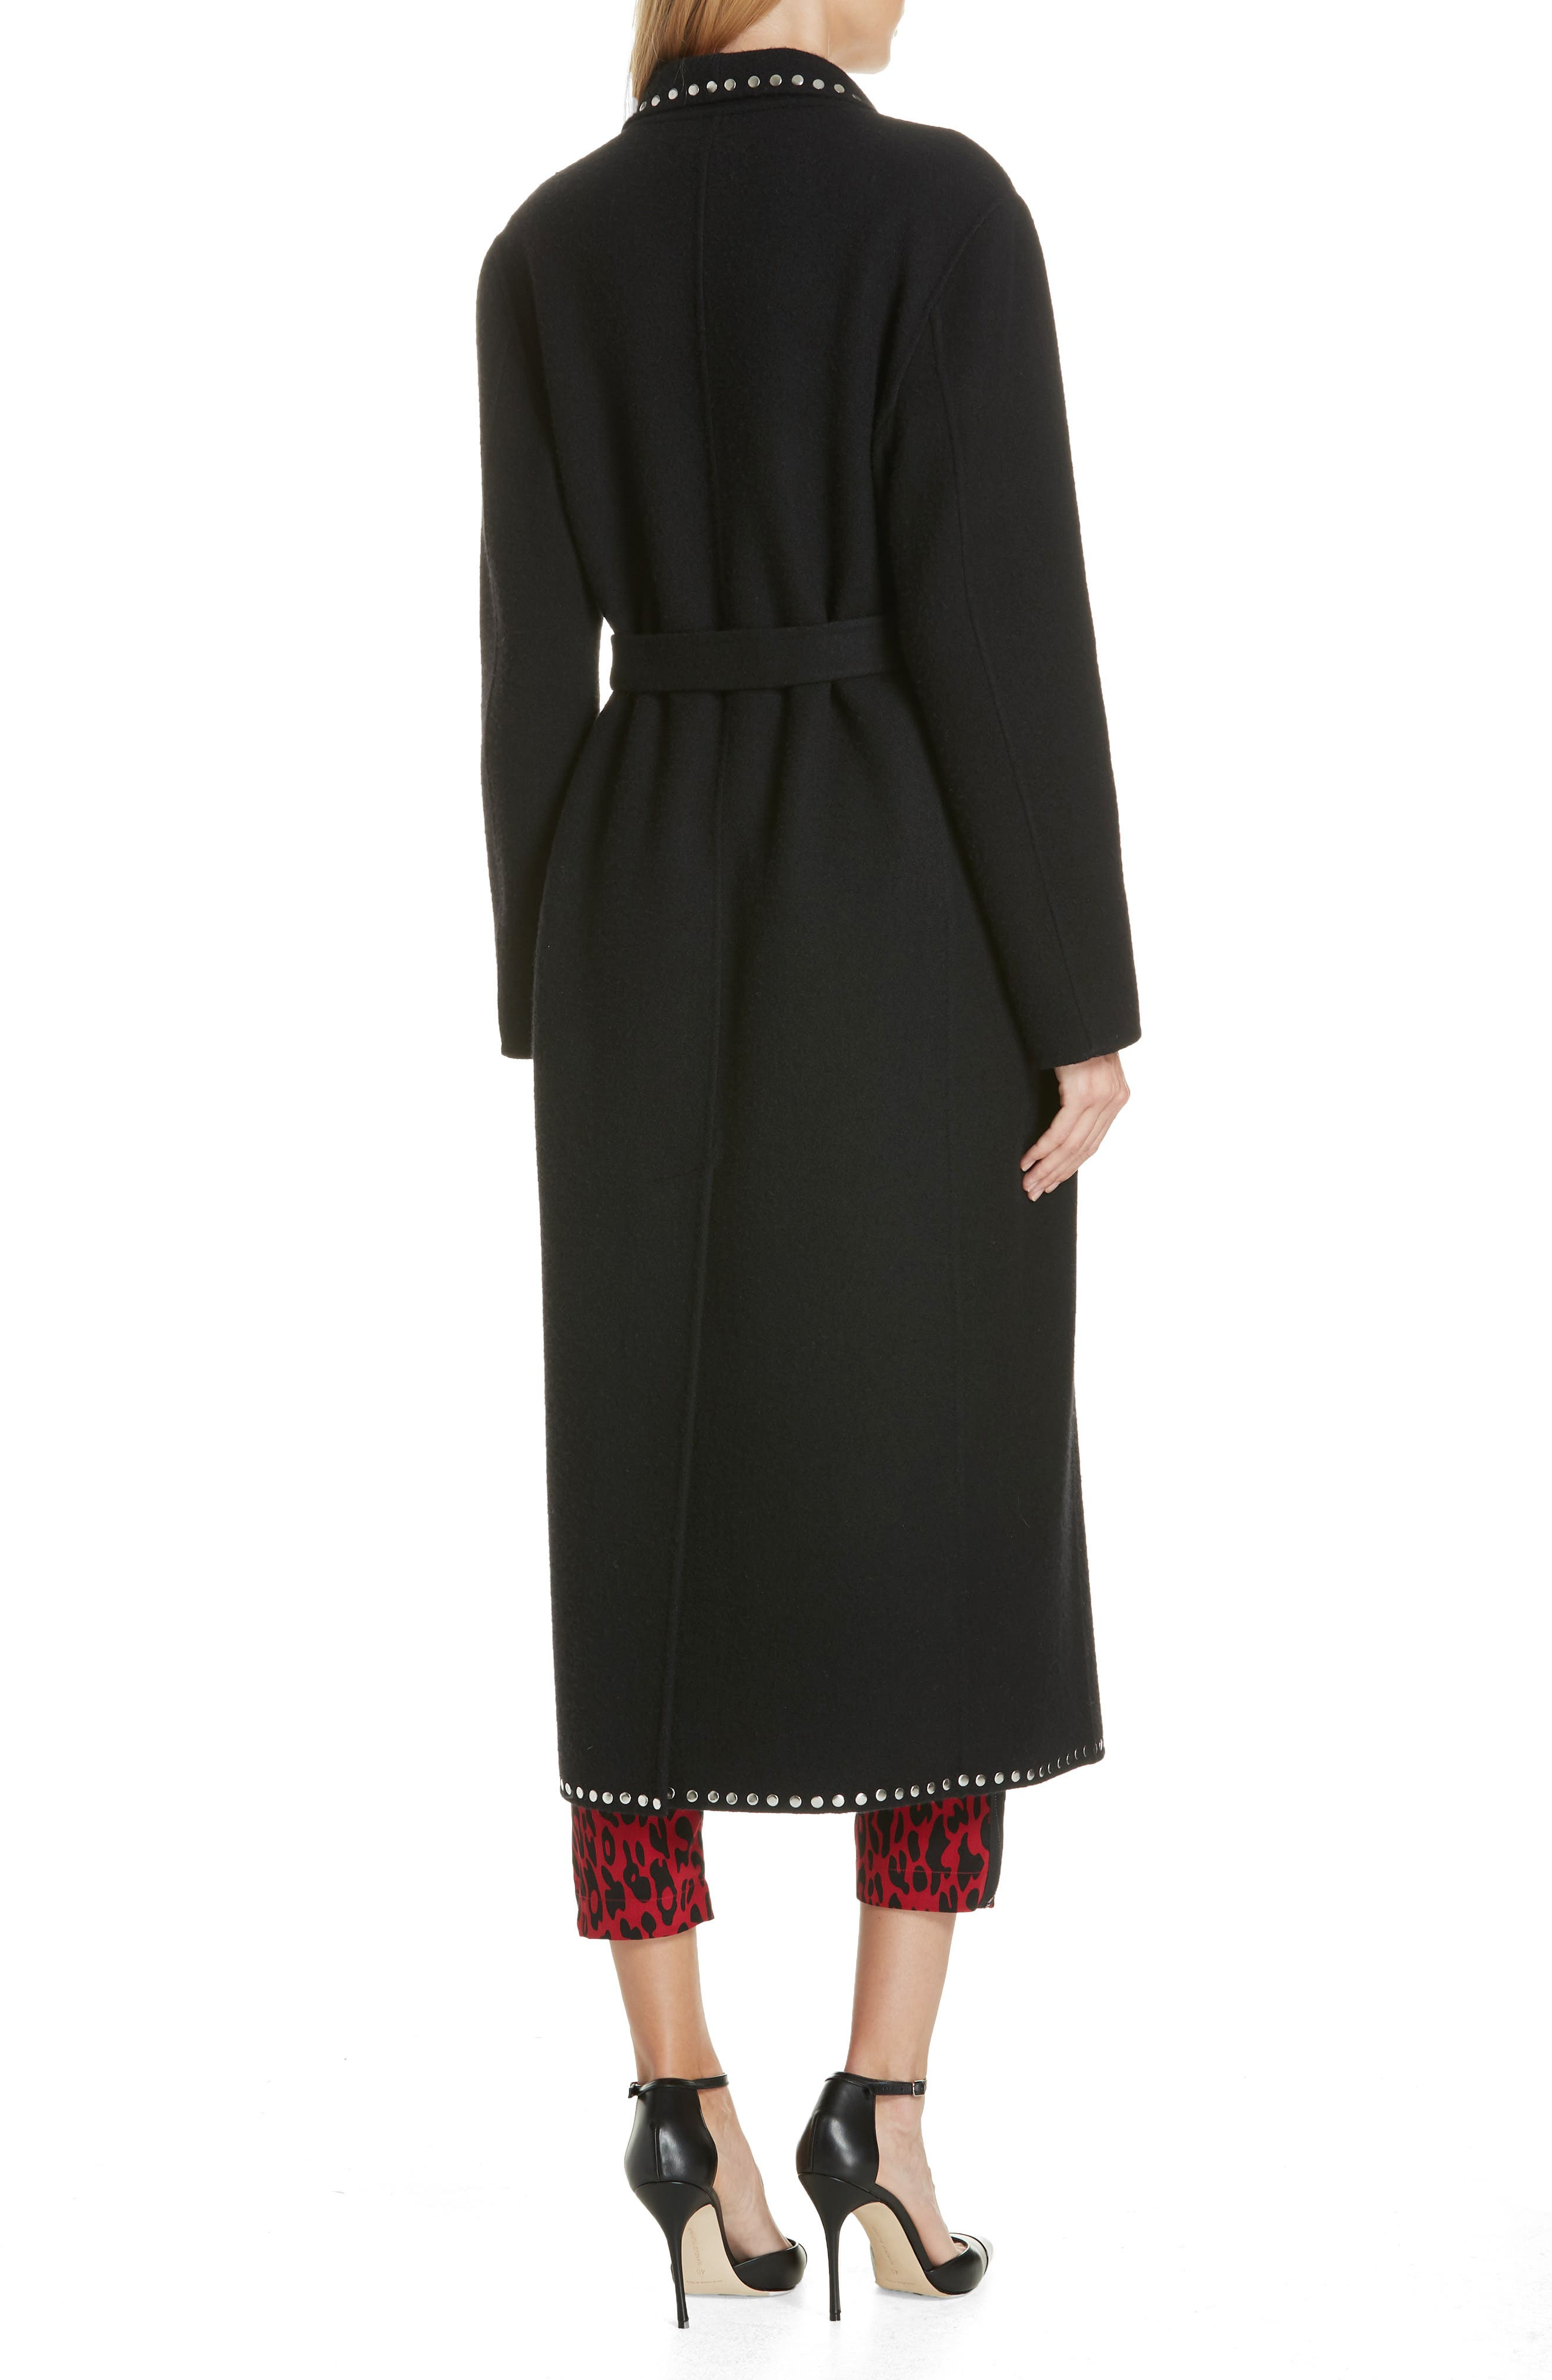 ROBERT RODRIGUEZ,                             Studded Wool Blend Coat,                             Alternate thumbnail 2, color,                             001